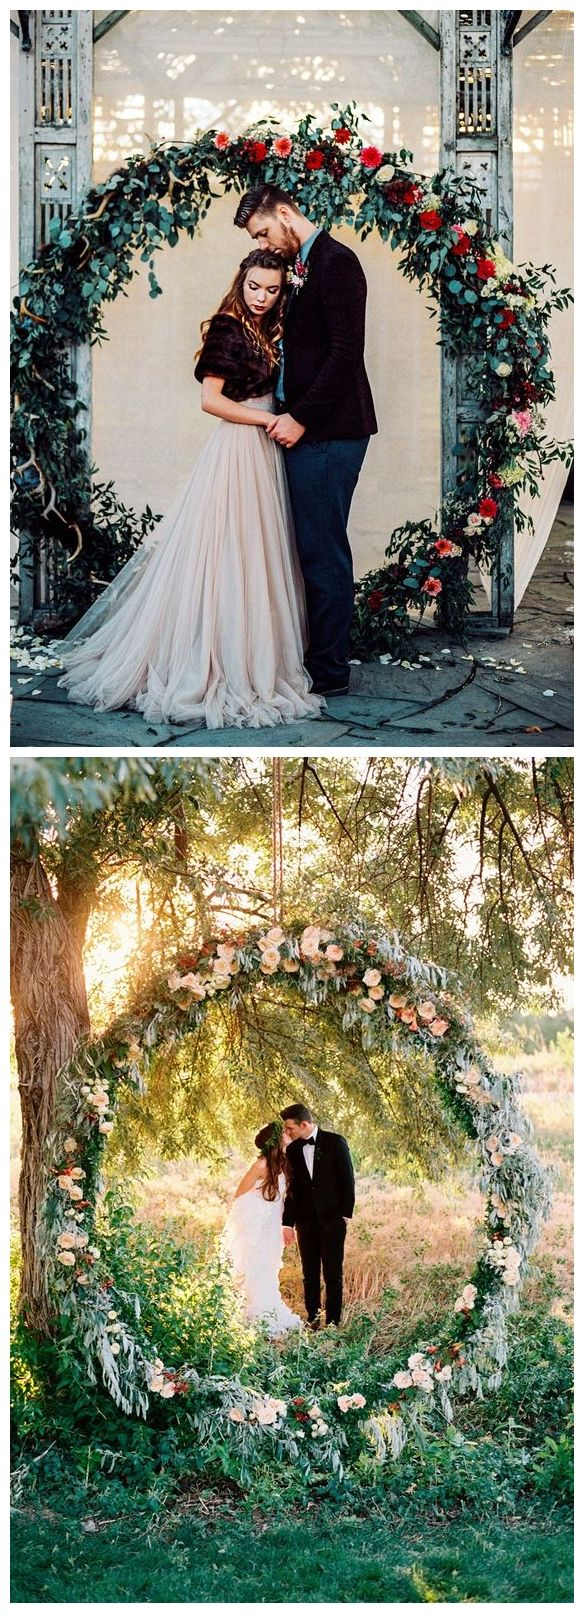 Circle Ceremony Arch = About $1500-2000; about $1300-1800 just greenery only.